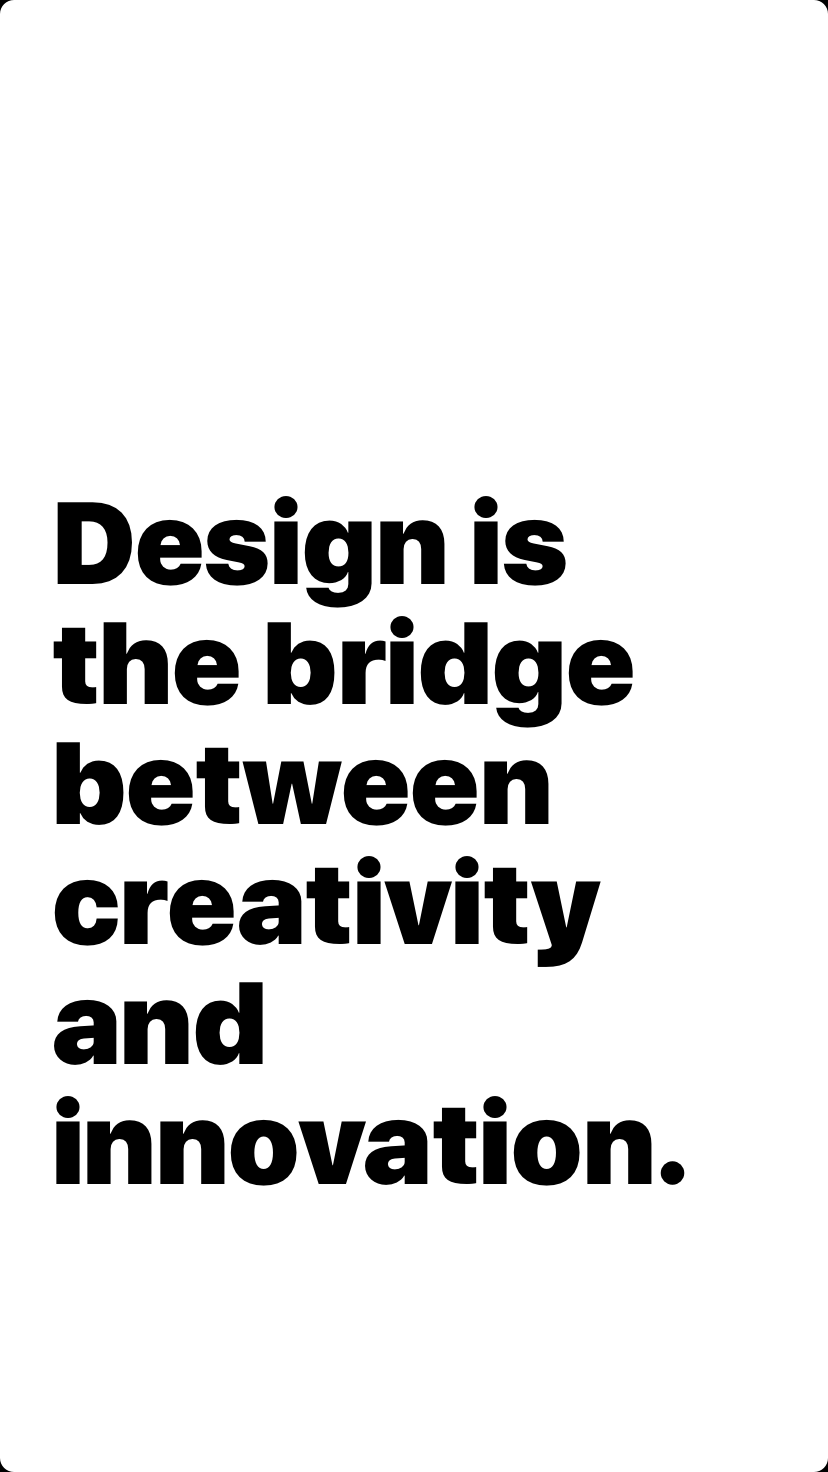 Design is the bridge between creativity and innovation.